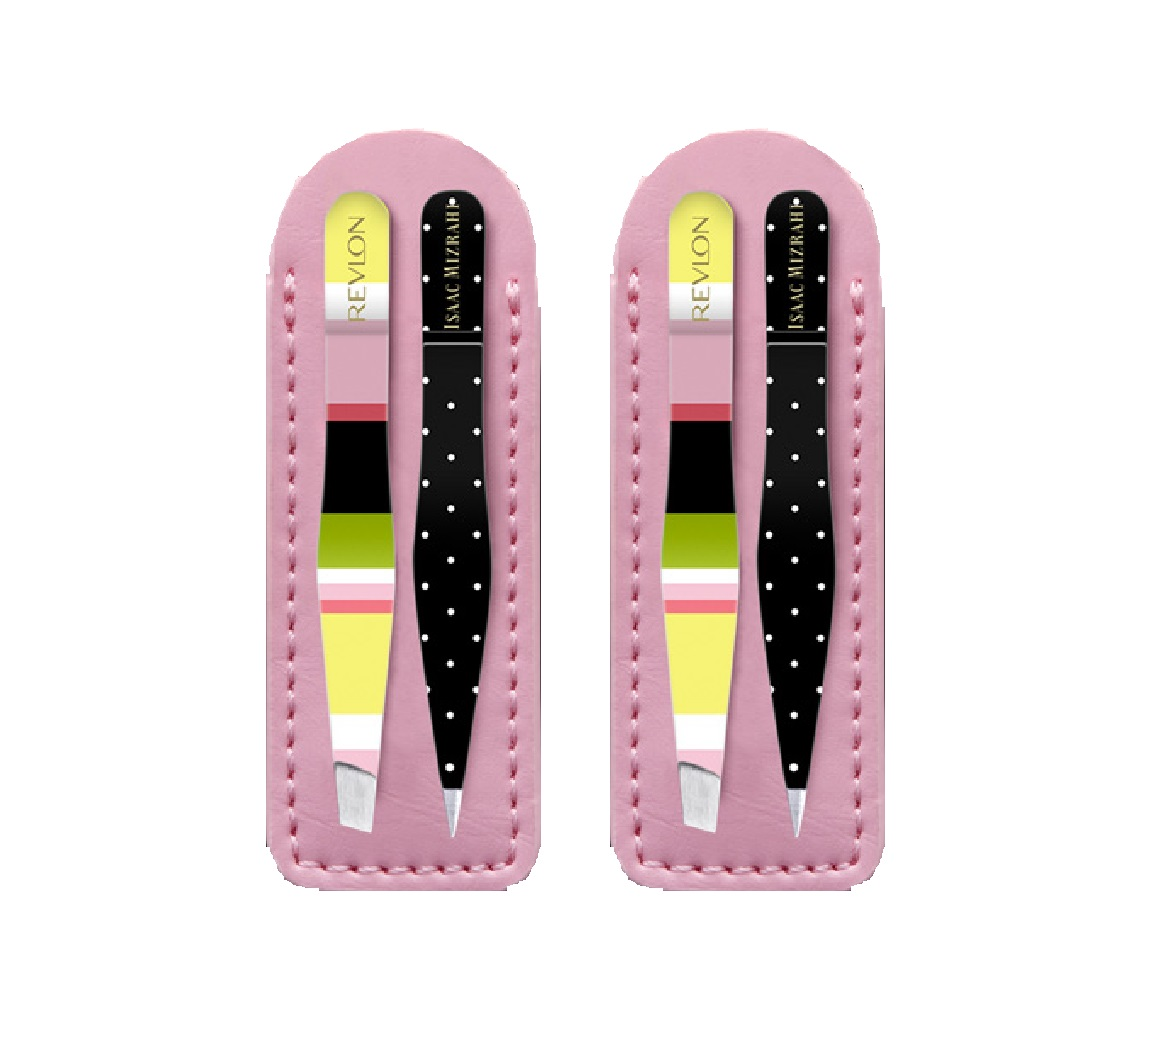 Revlon Isaac Mizrahi Slant and Point Tip Travel Tweezer Set (Pack of 2)